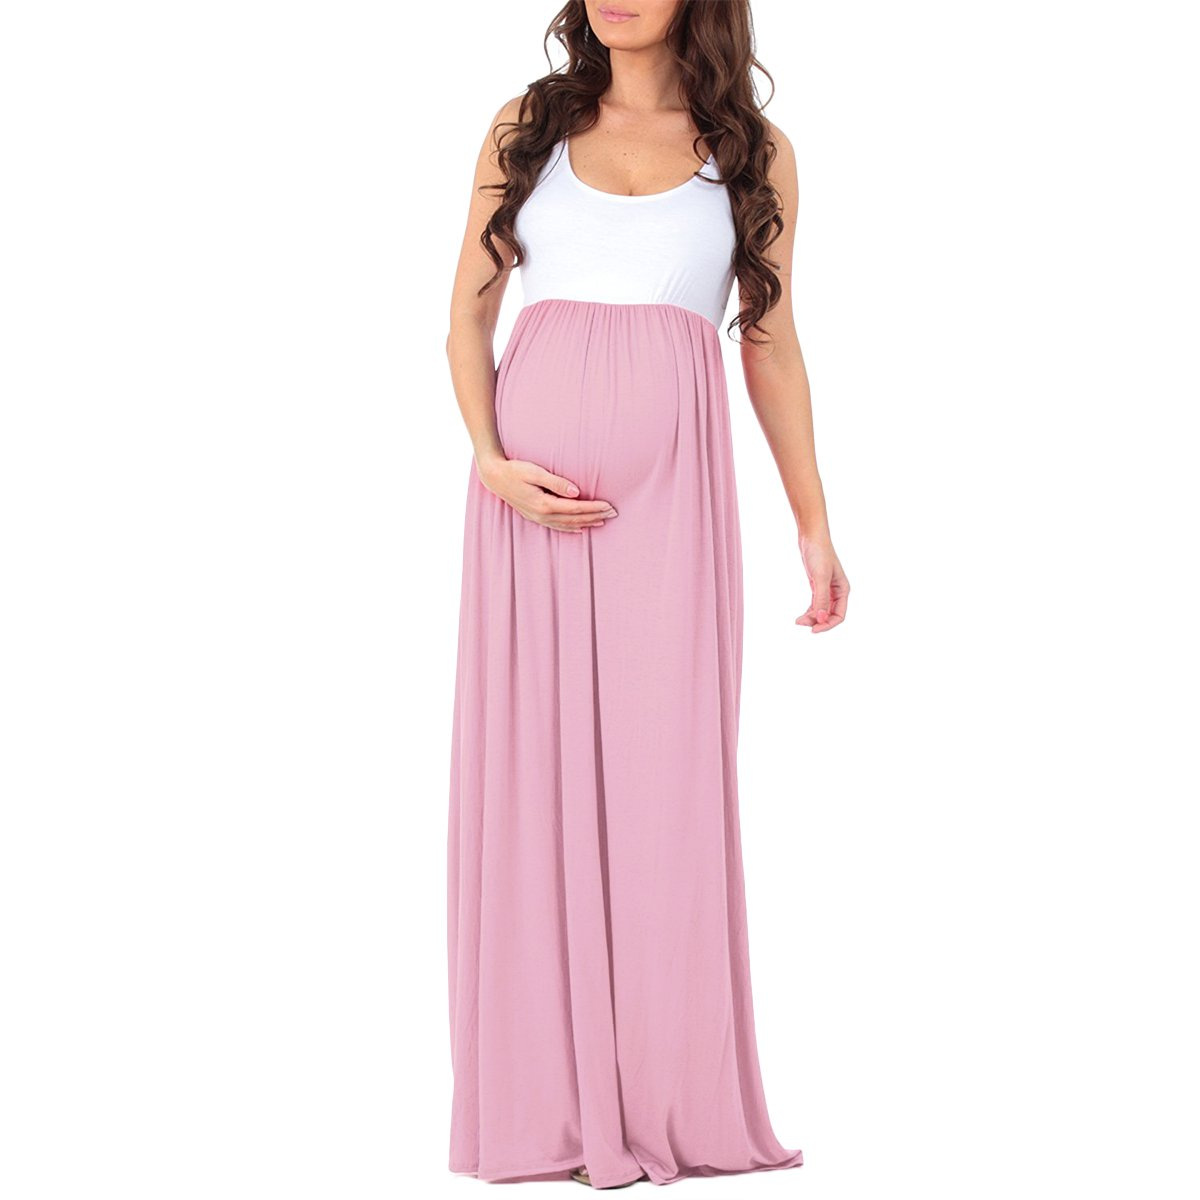 OBEEII Women's Maternity Ruched Tank Dress Casual Baby Shower Photo Prop Maxi Gown